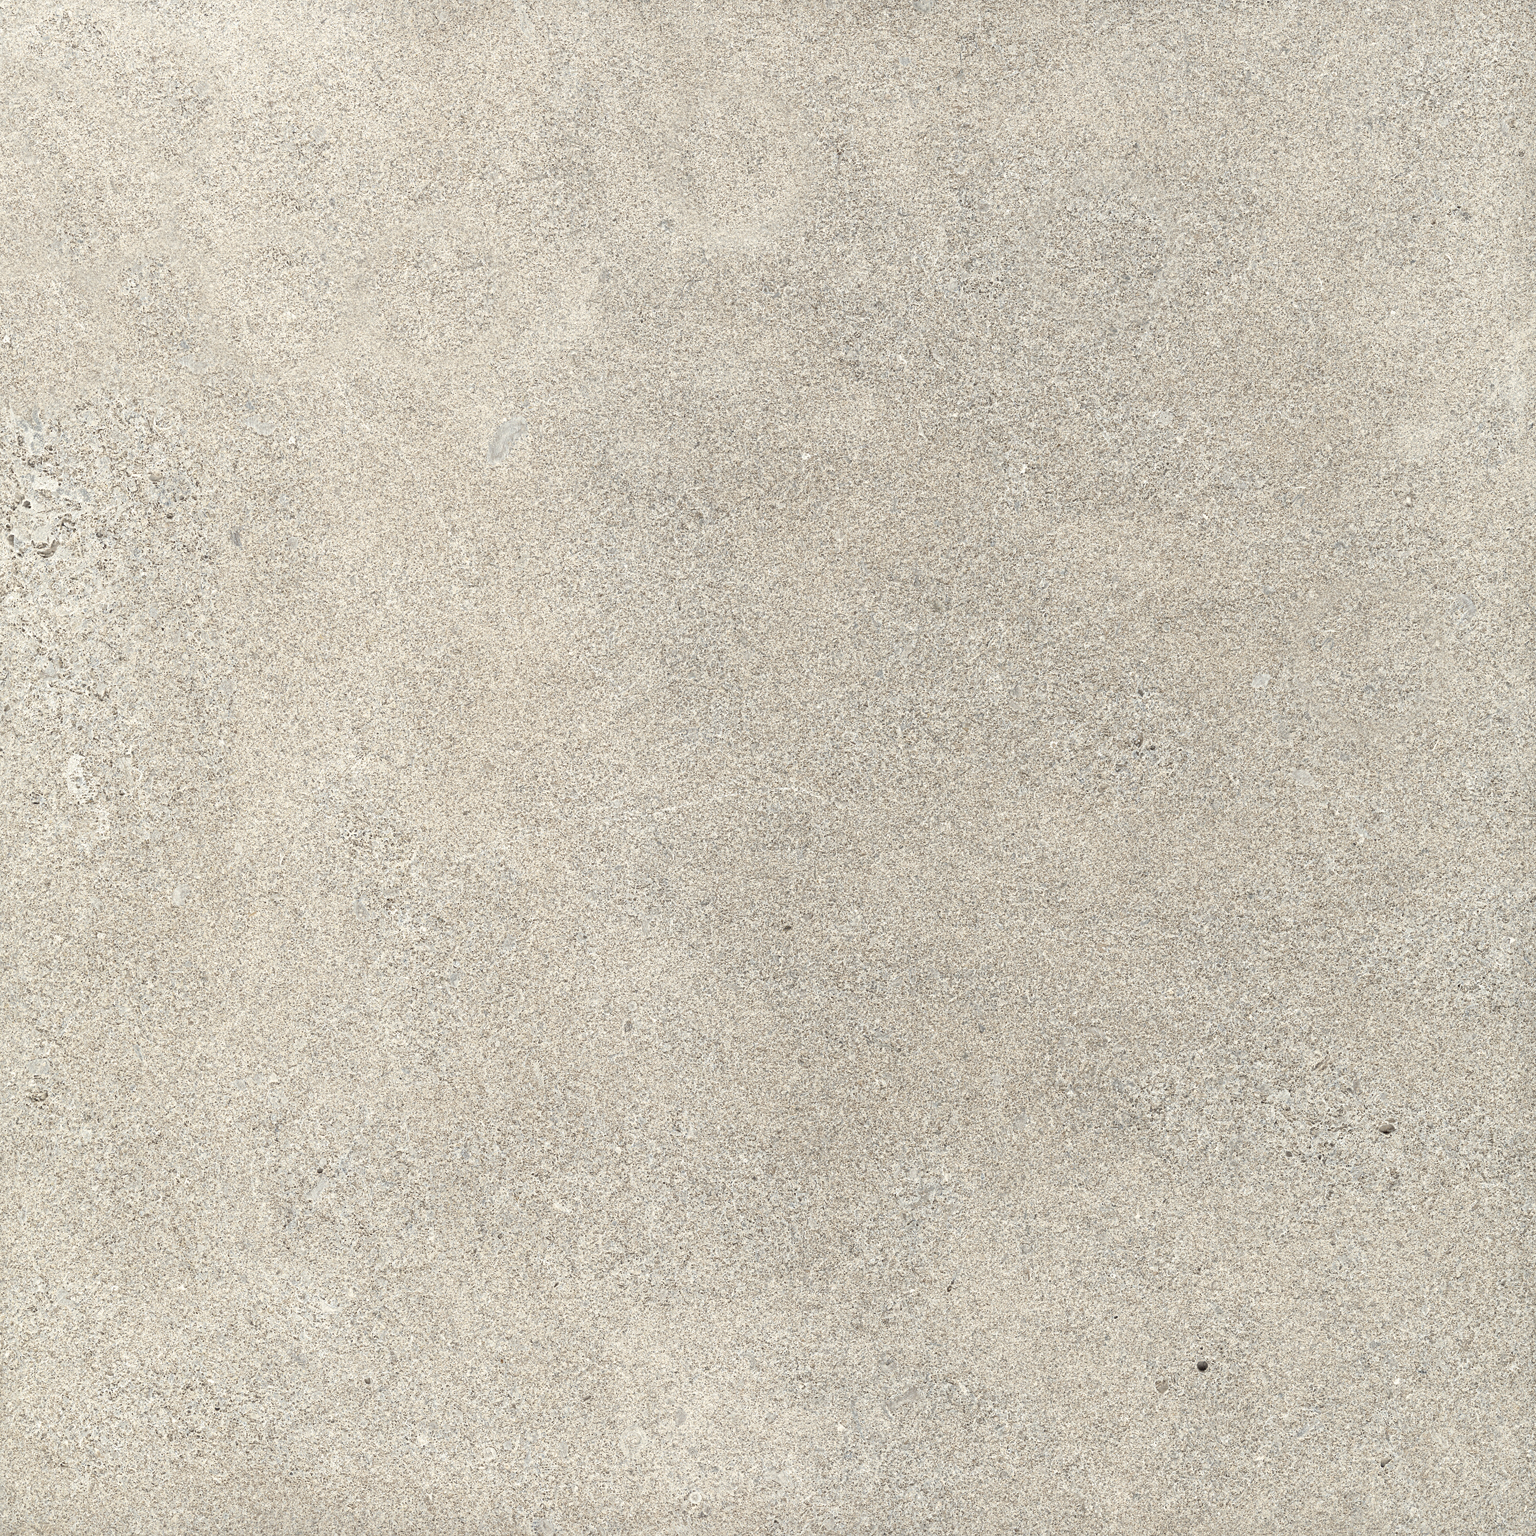 Indiana Limestone - Full Color Blend